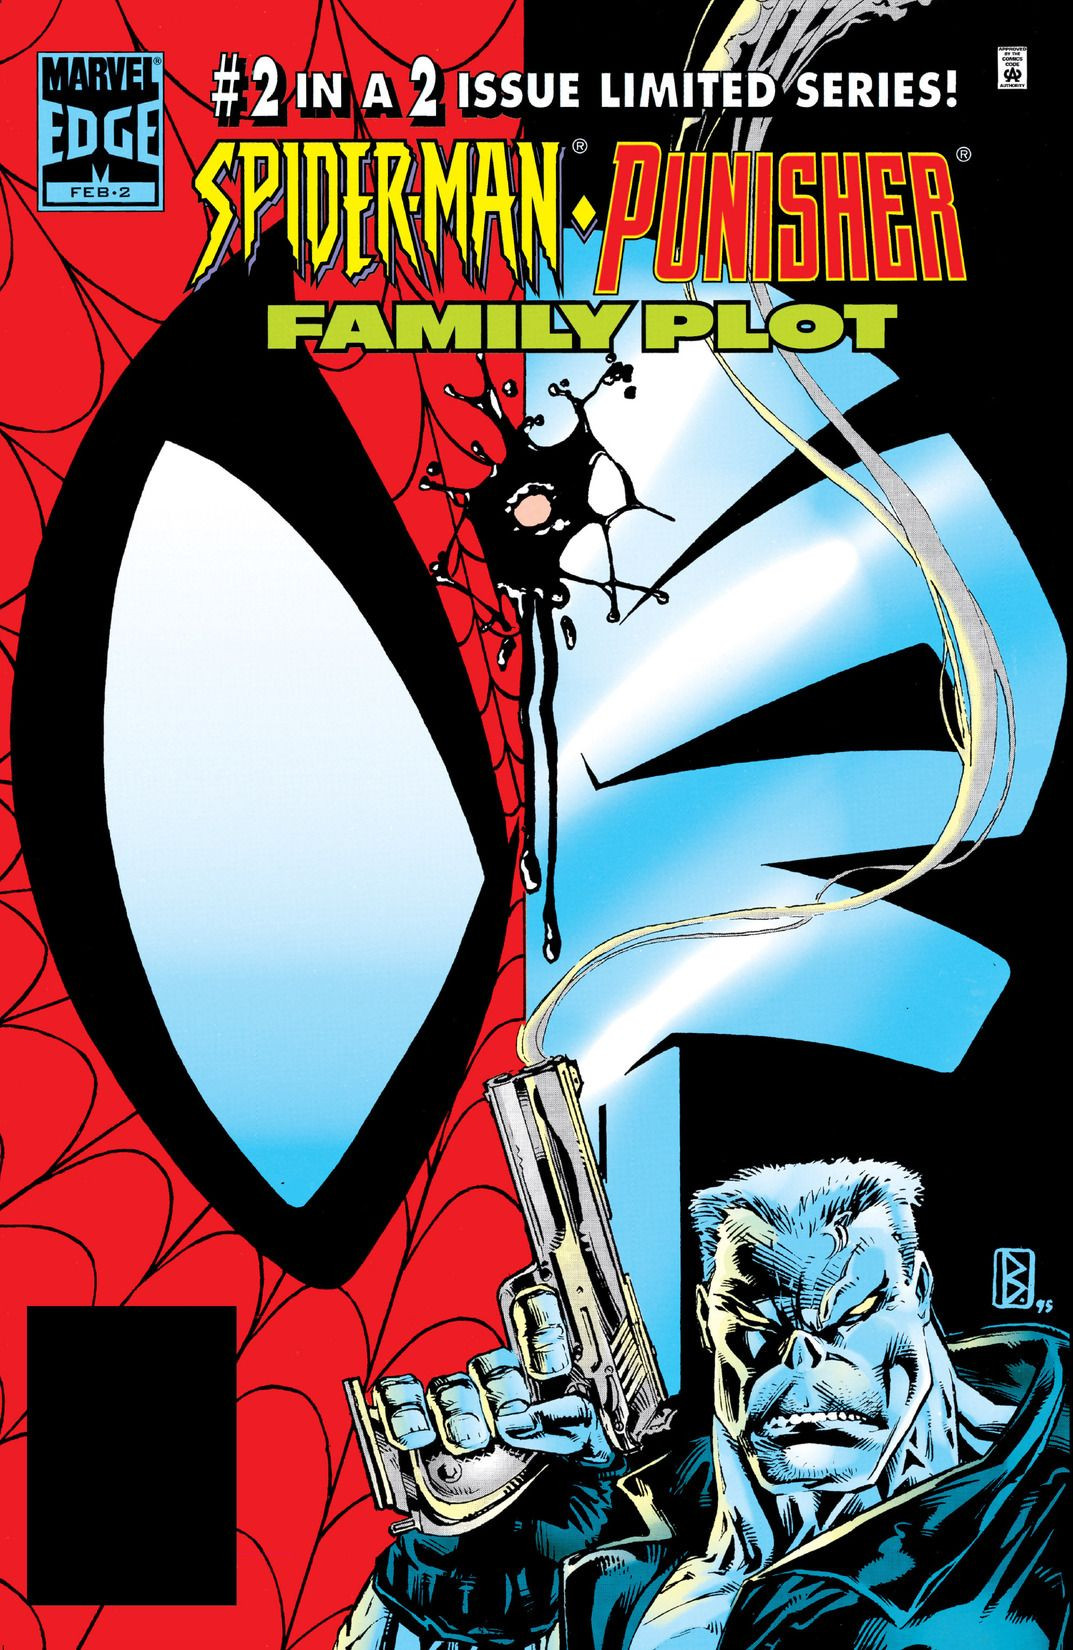 Spider-Man/Punisher: Family Plot Vol 1 2